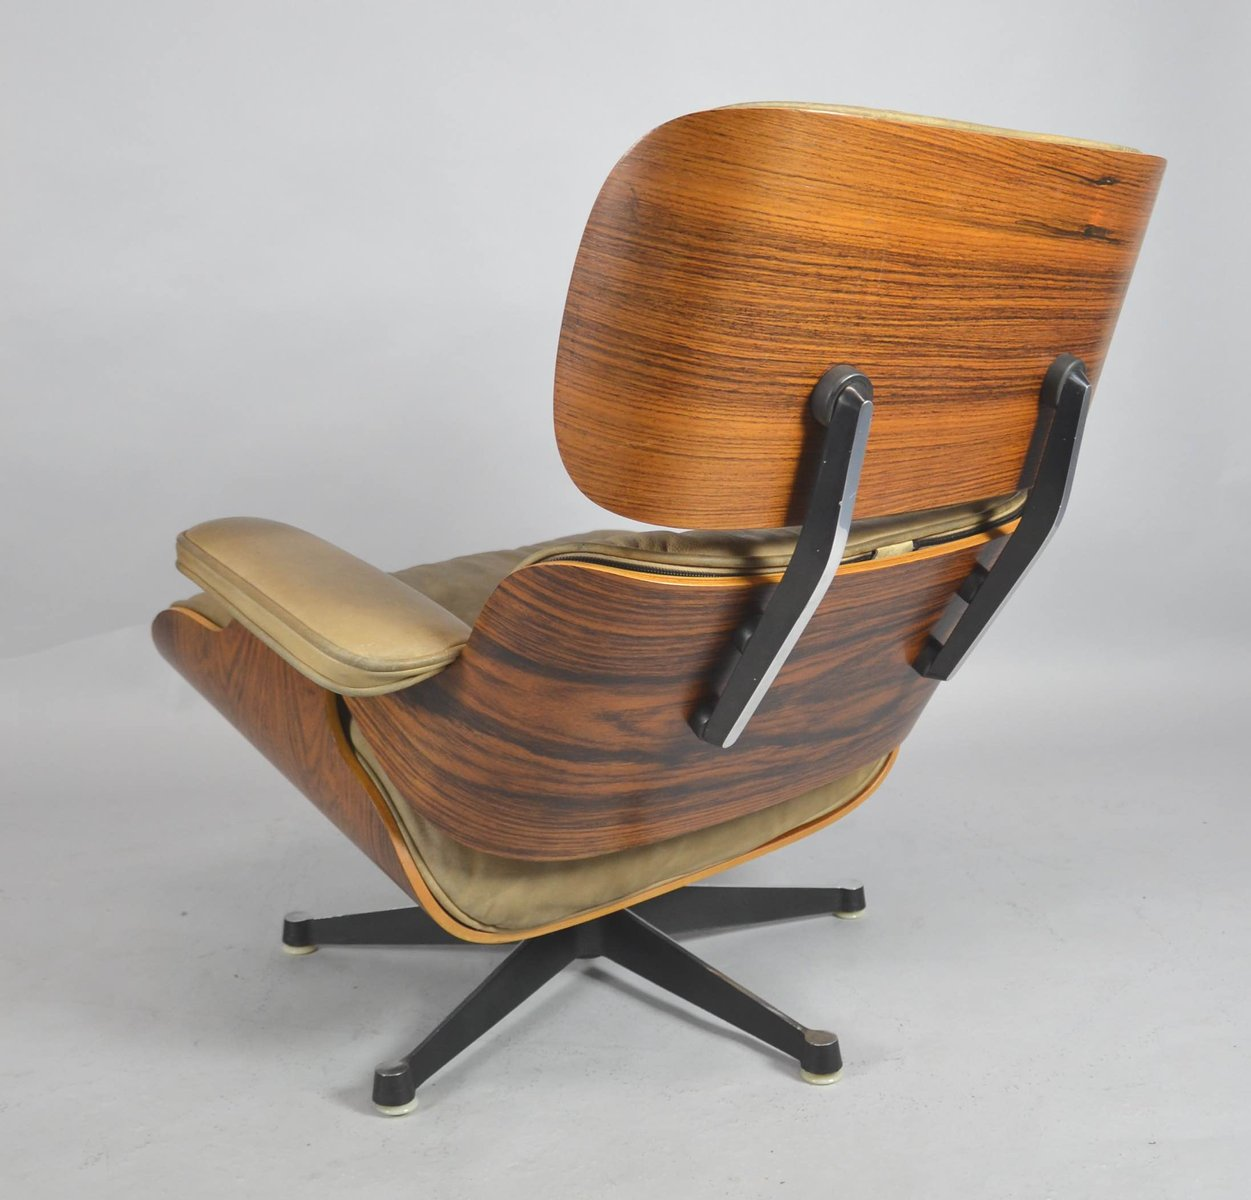 Sessel Charles Eames Mid Century Sessel Von Charles And Ray Eames Für Fehlbaum